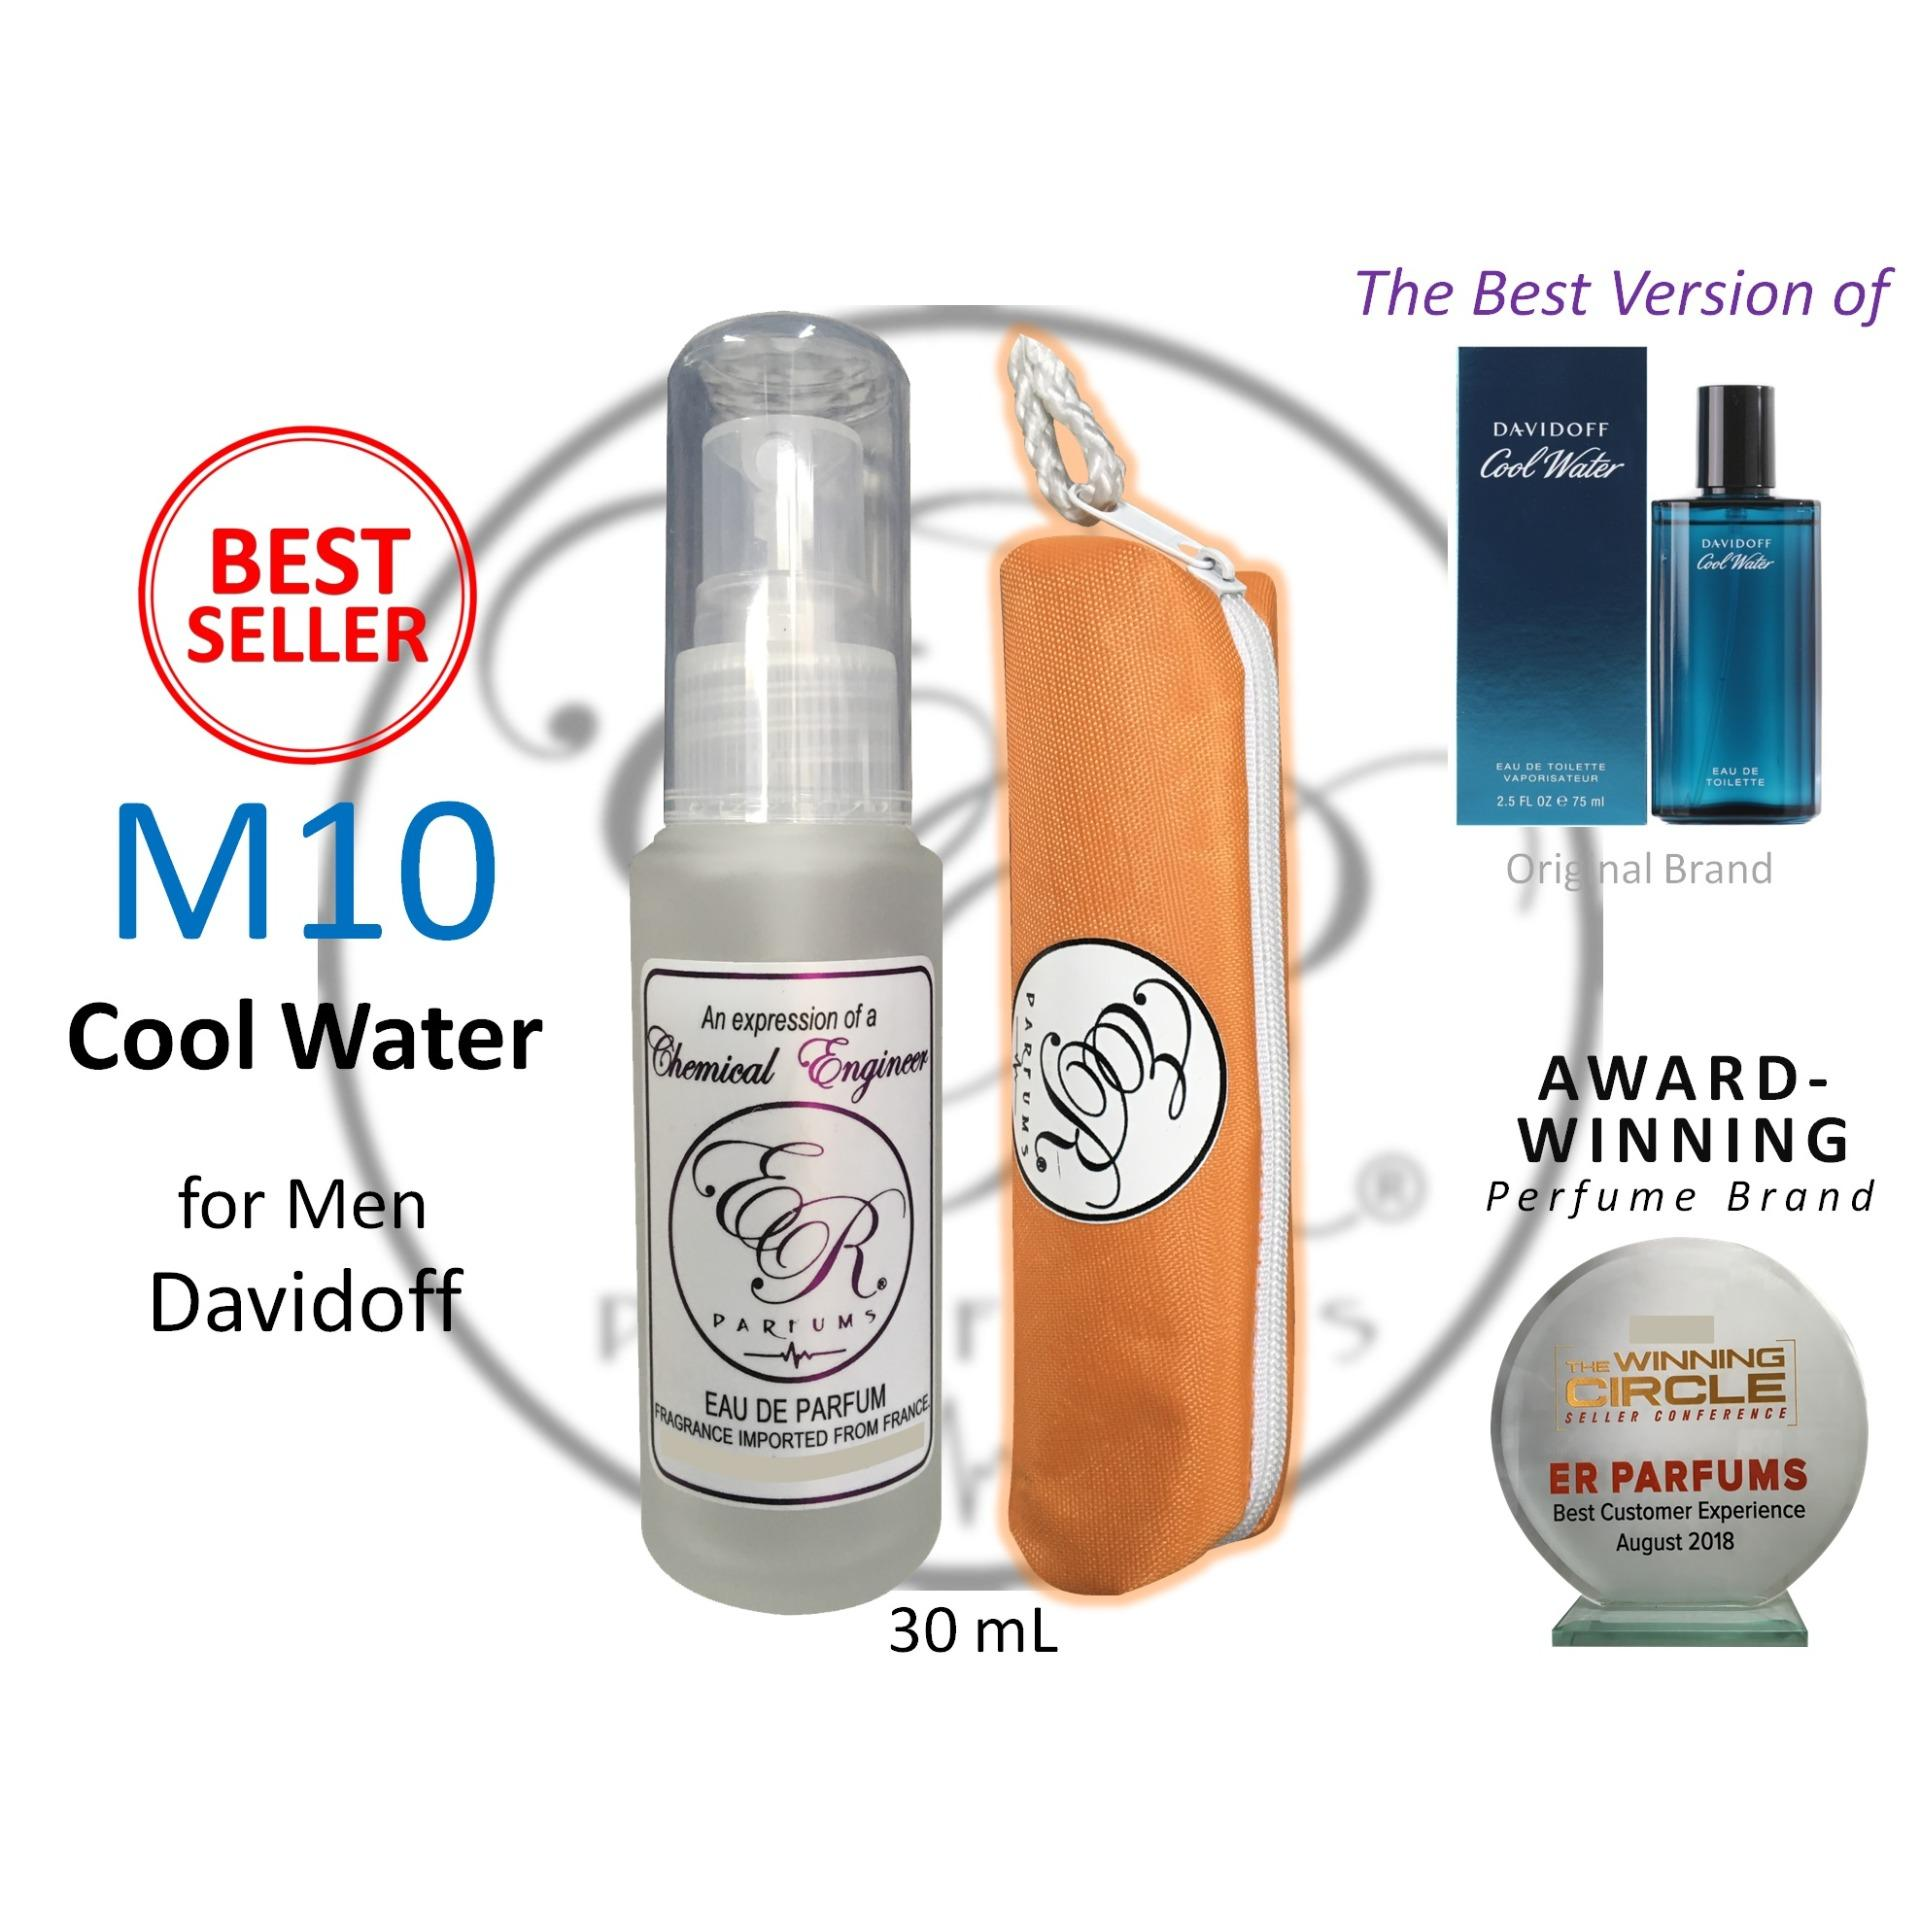 ER PARFUMS M10 Cool Water for Men by Davidoff 1 piece 30 ml perfume with free pouch - BEST VERSION product preview, discount at cheapest price